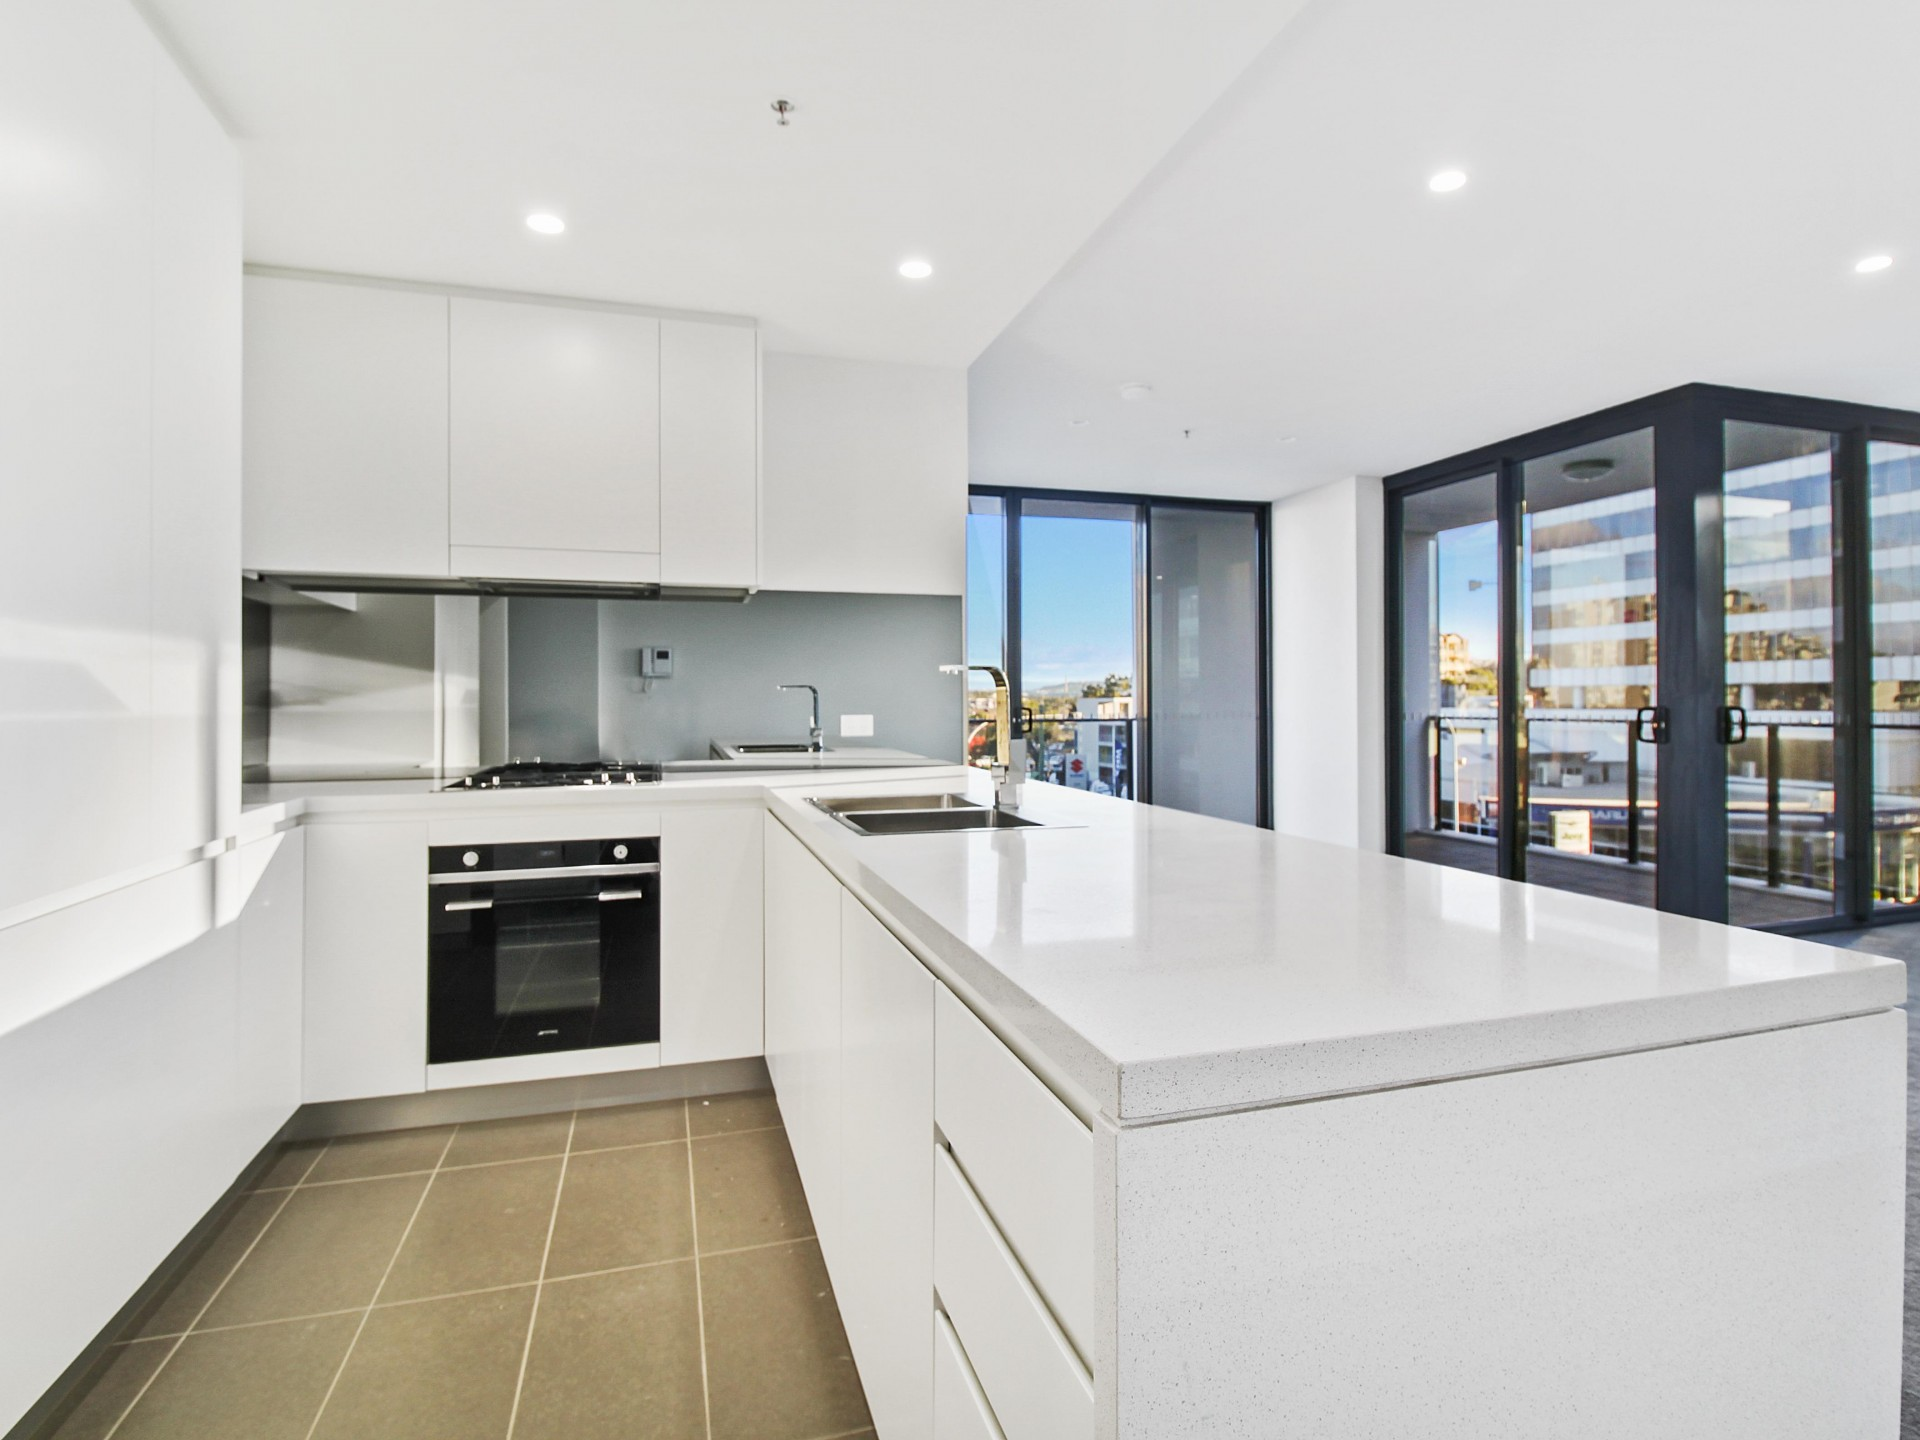 Wollongong, New South Wales 2500 | All Residential Real Estate ...